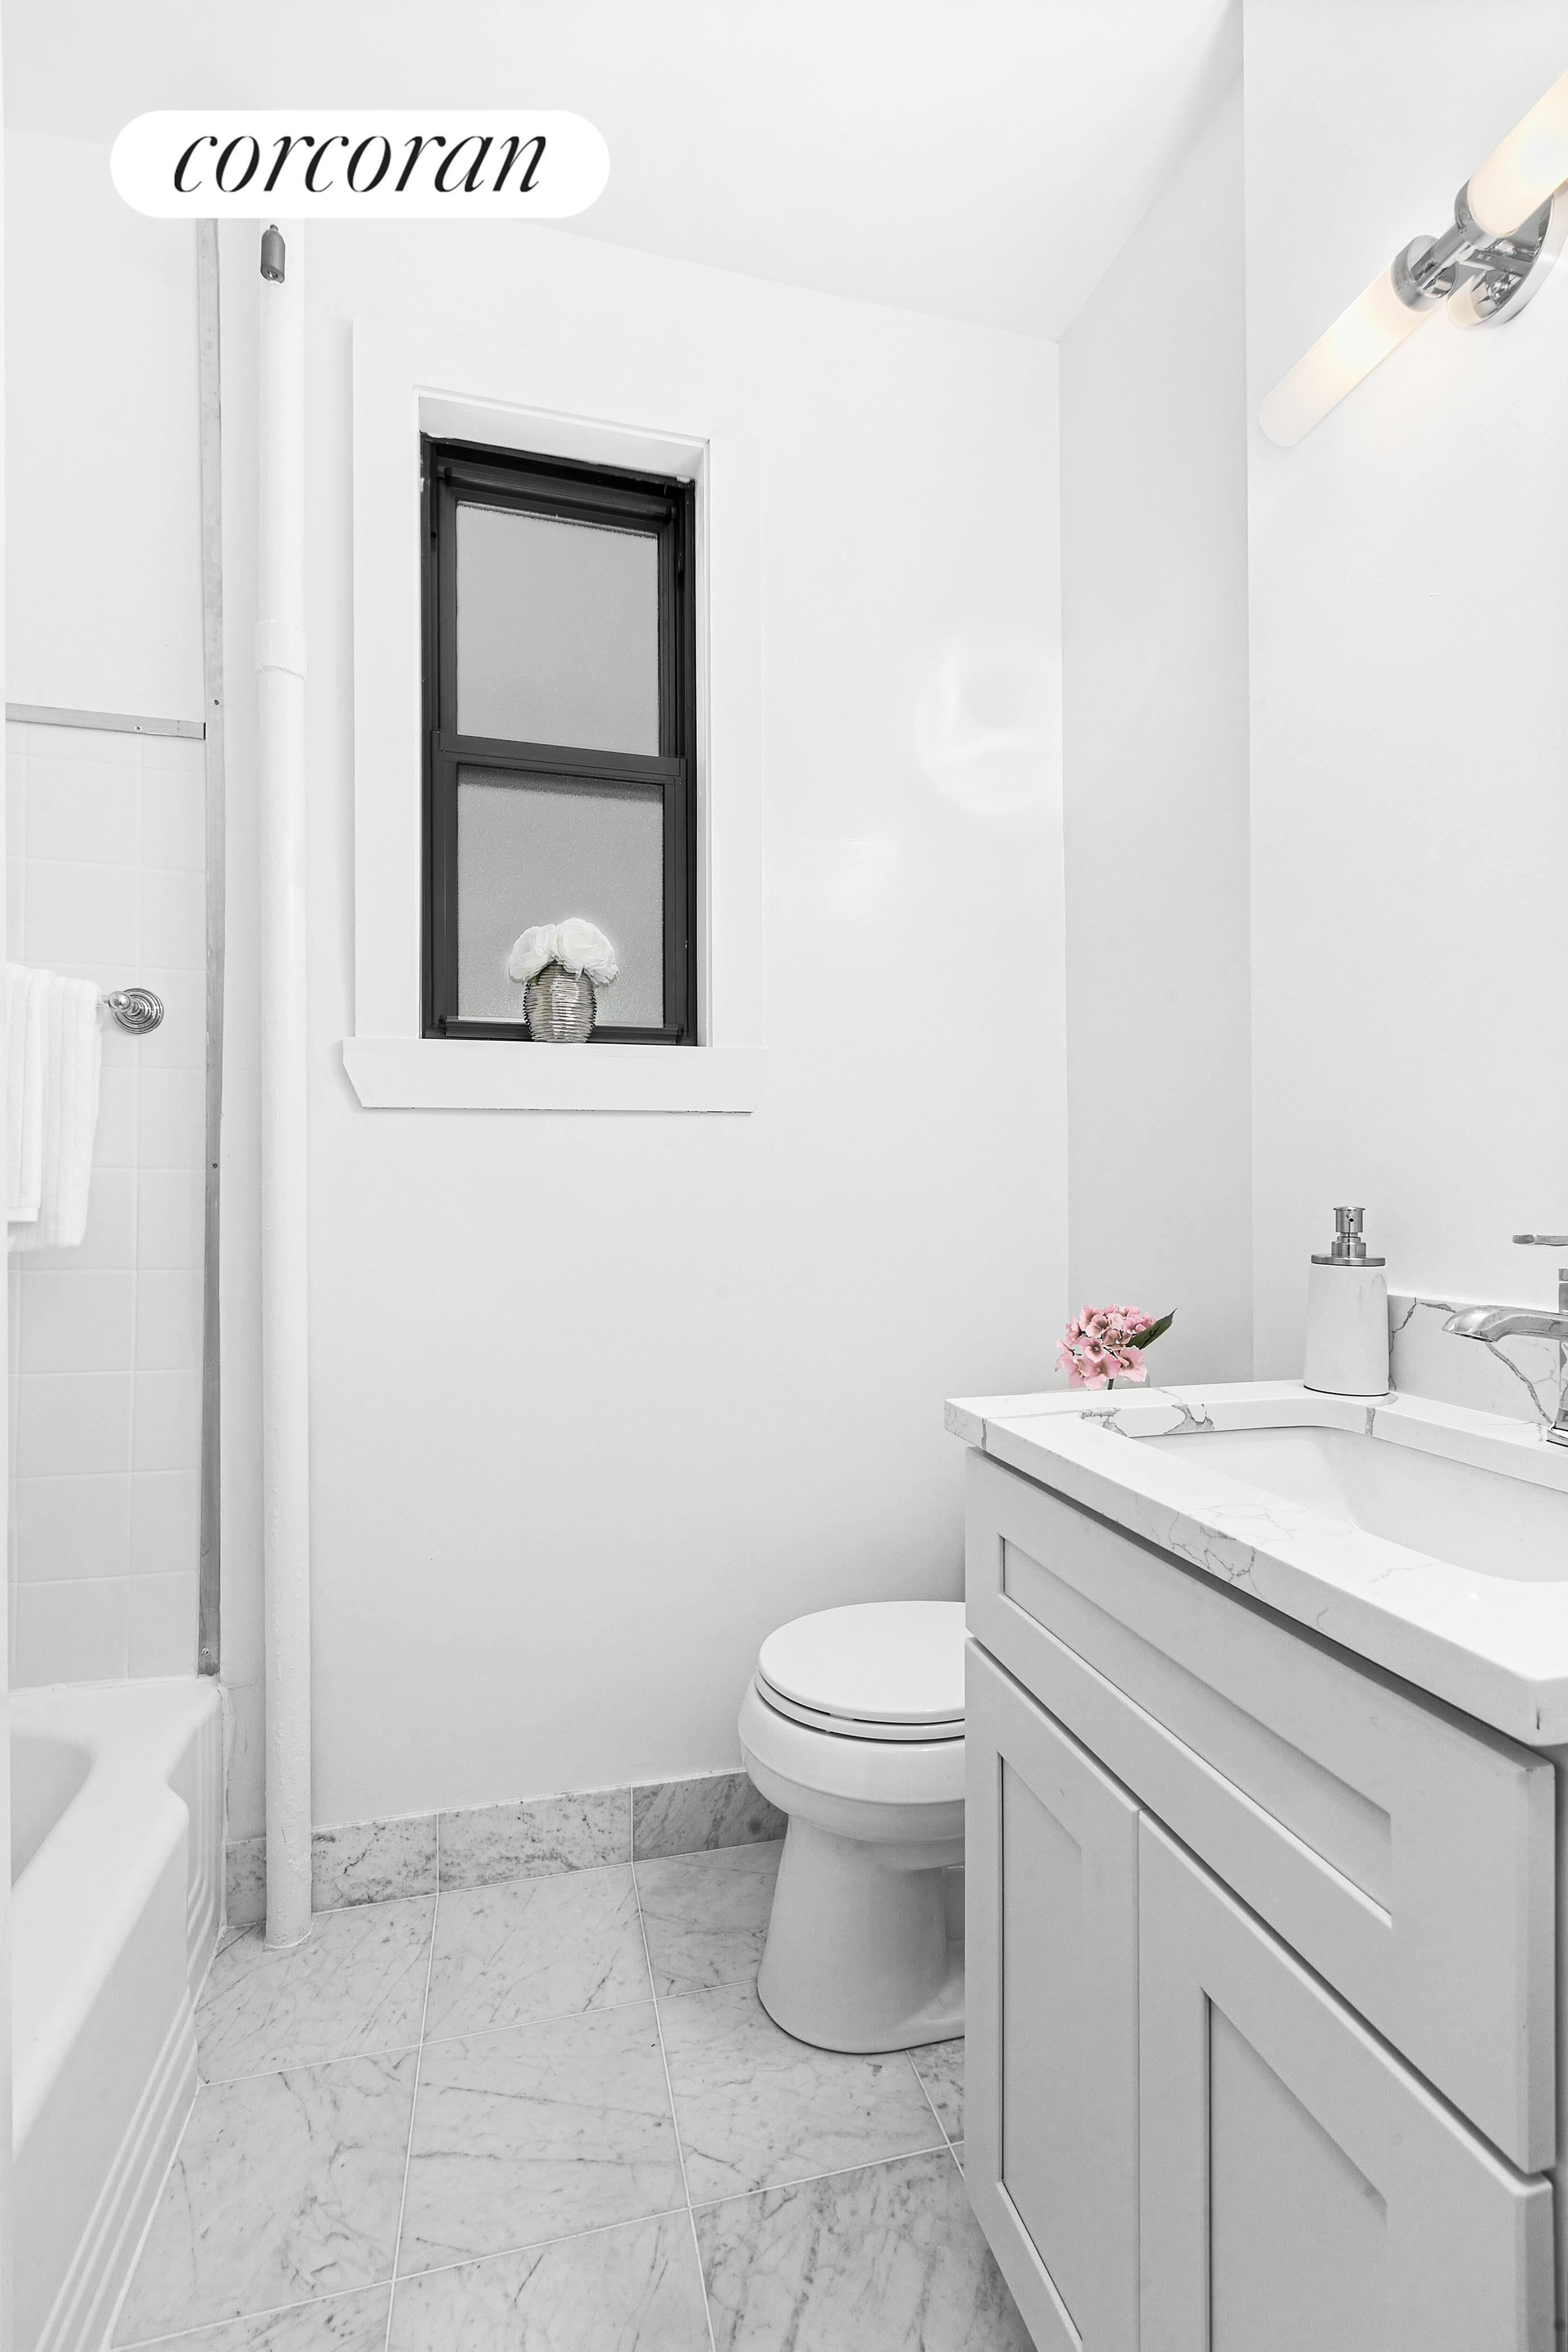 Apartment for sale at 104 East 37th Street, Apt 3F